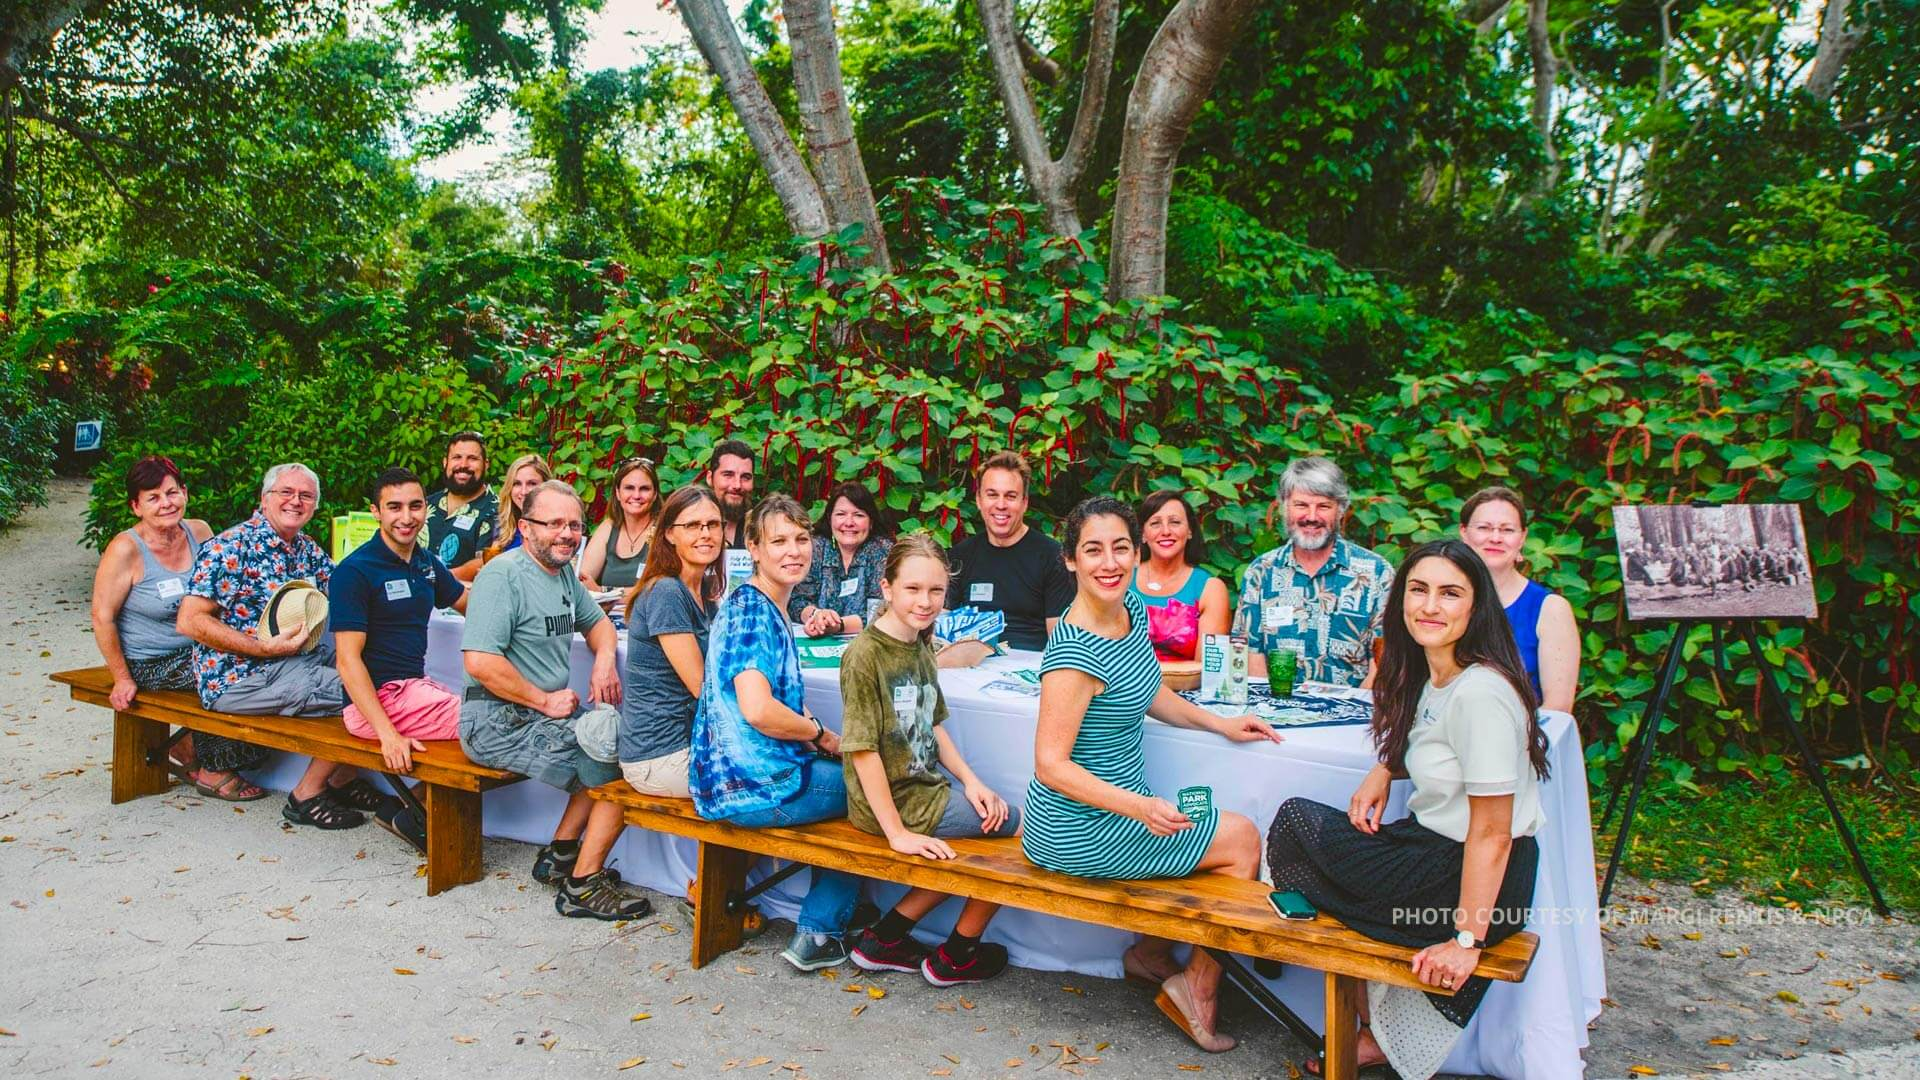 Group attending National Parks Conservation Conference picnic. Photo courtesy of Margi Rentis and NPCA